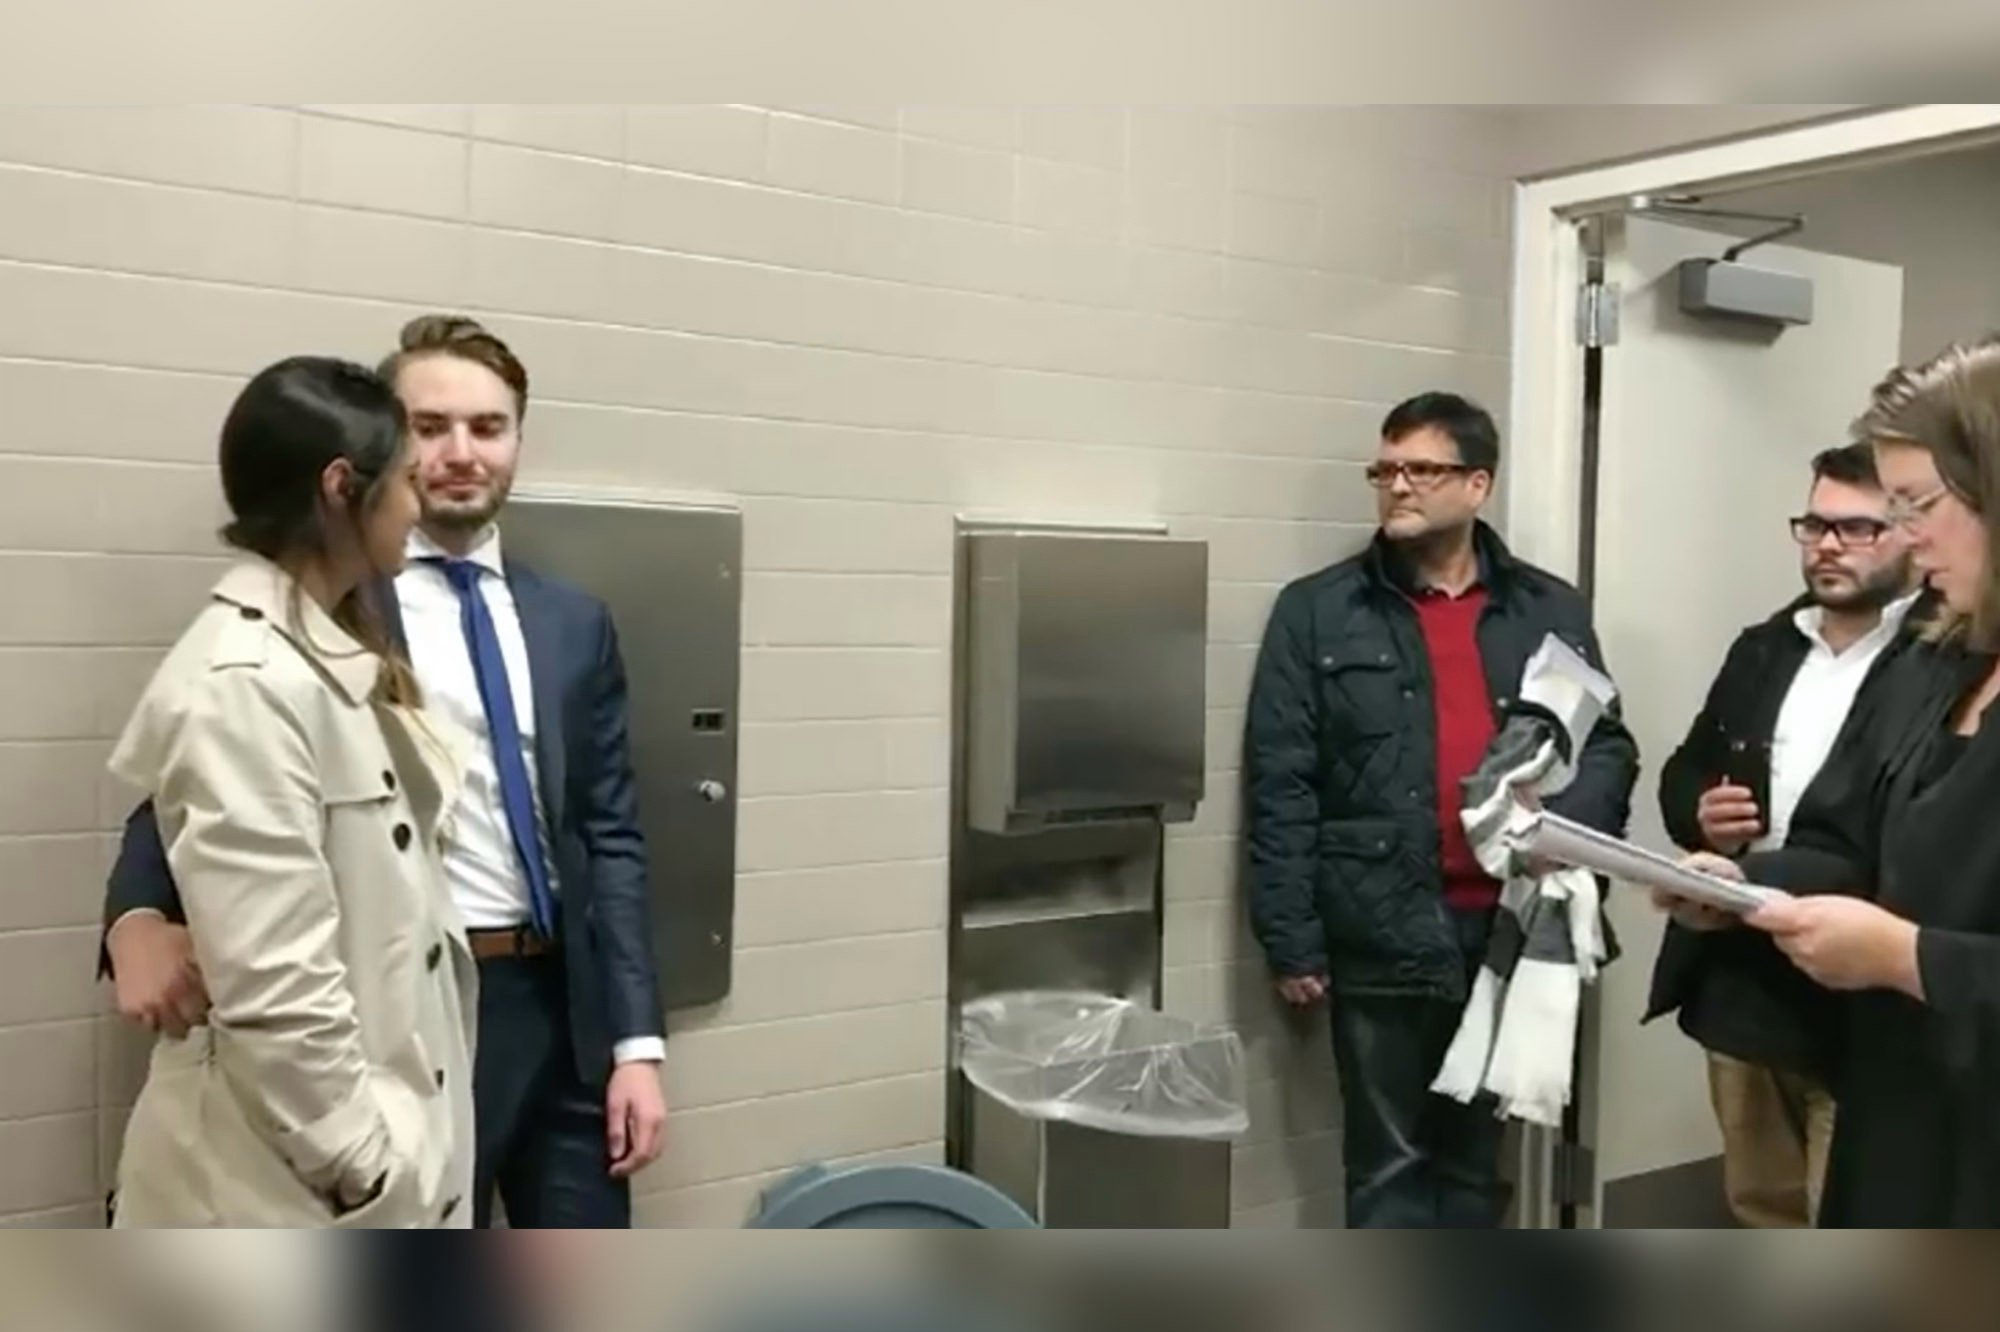 Couple gets married in courthouse bathroom